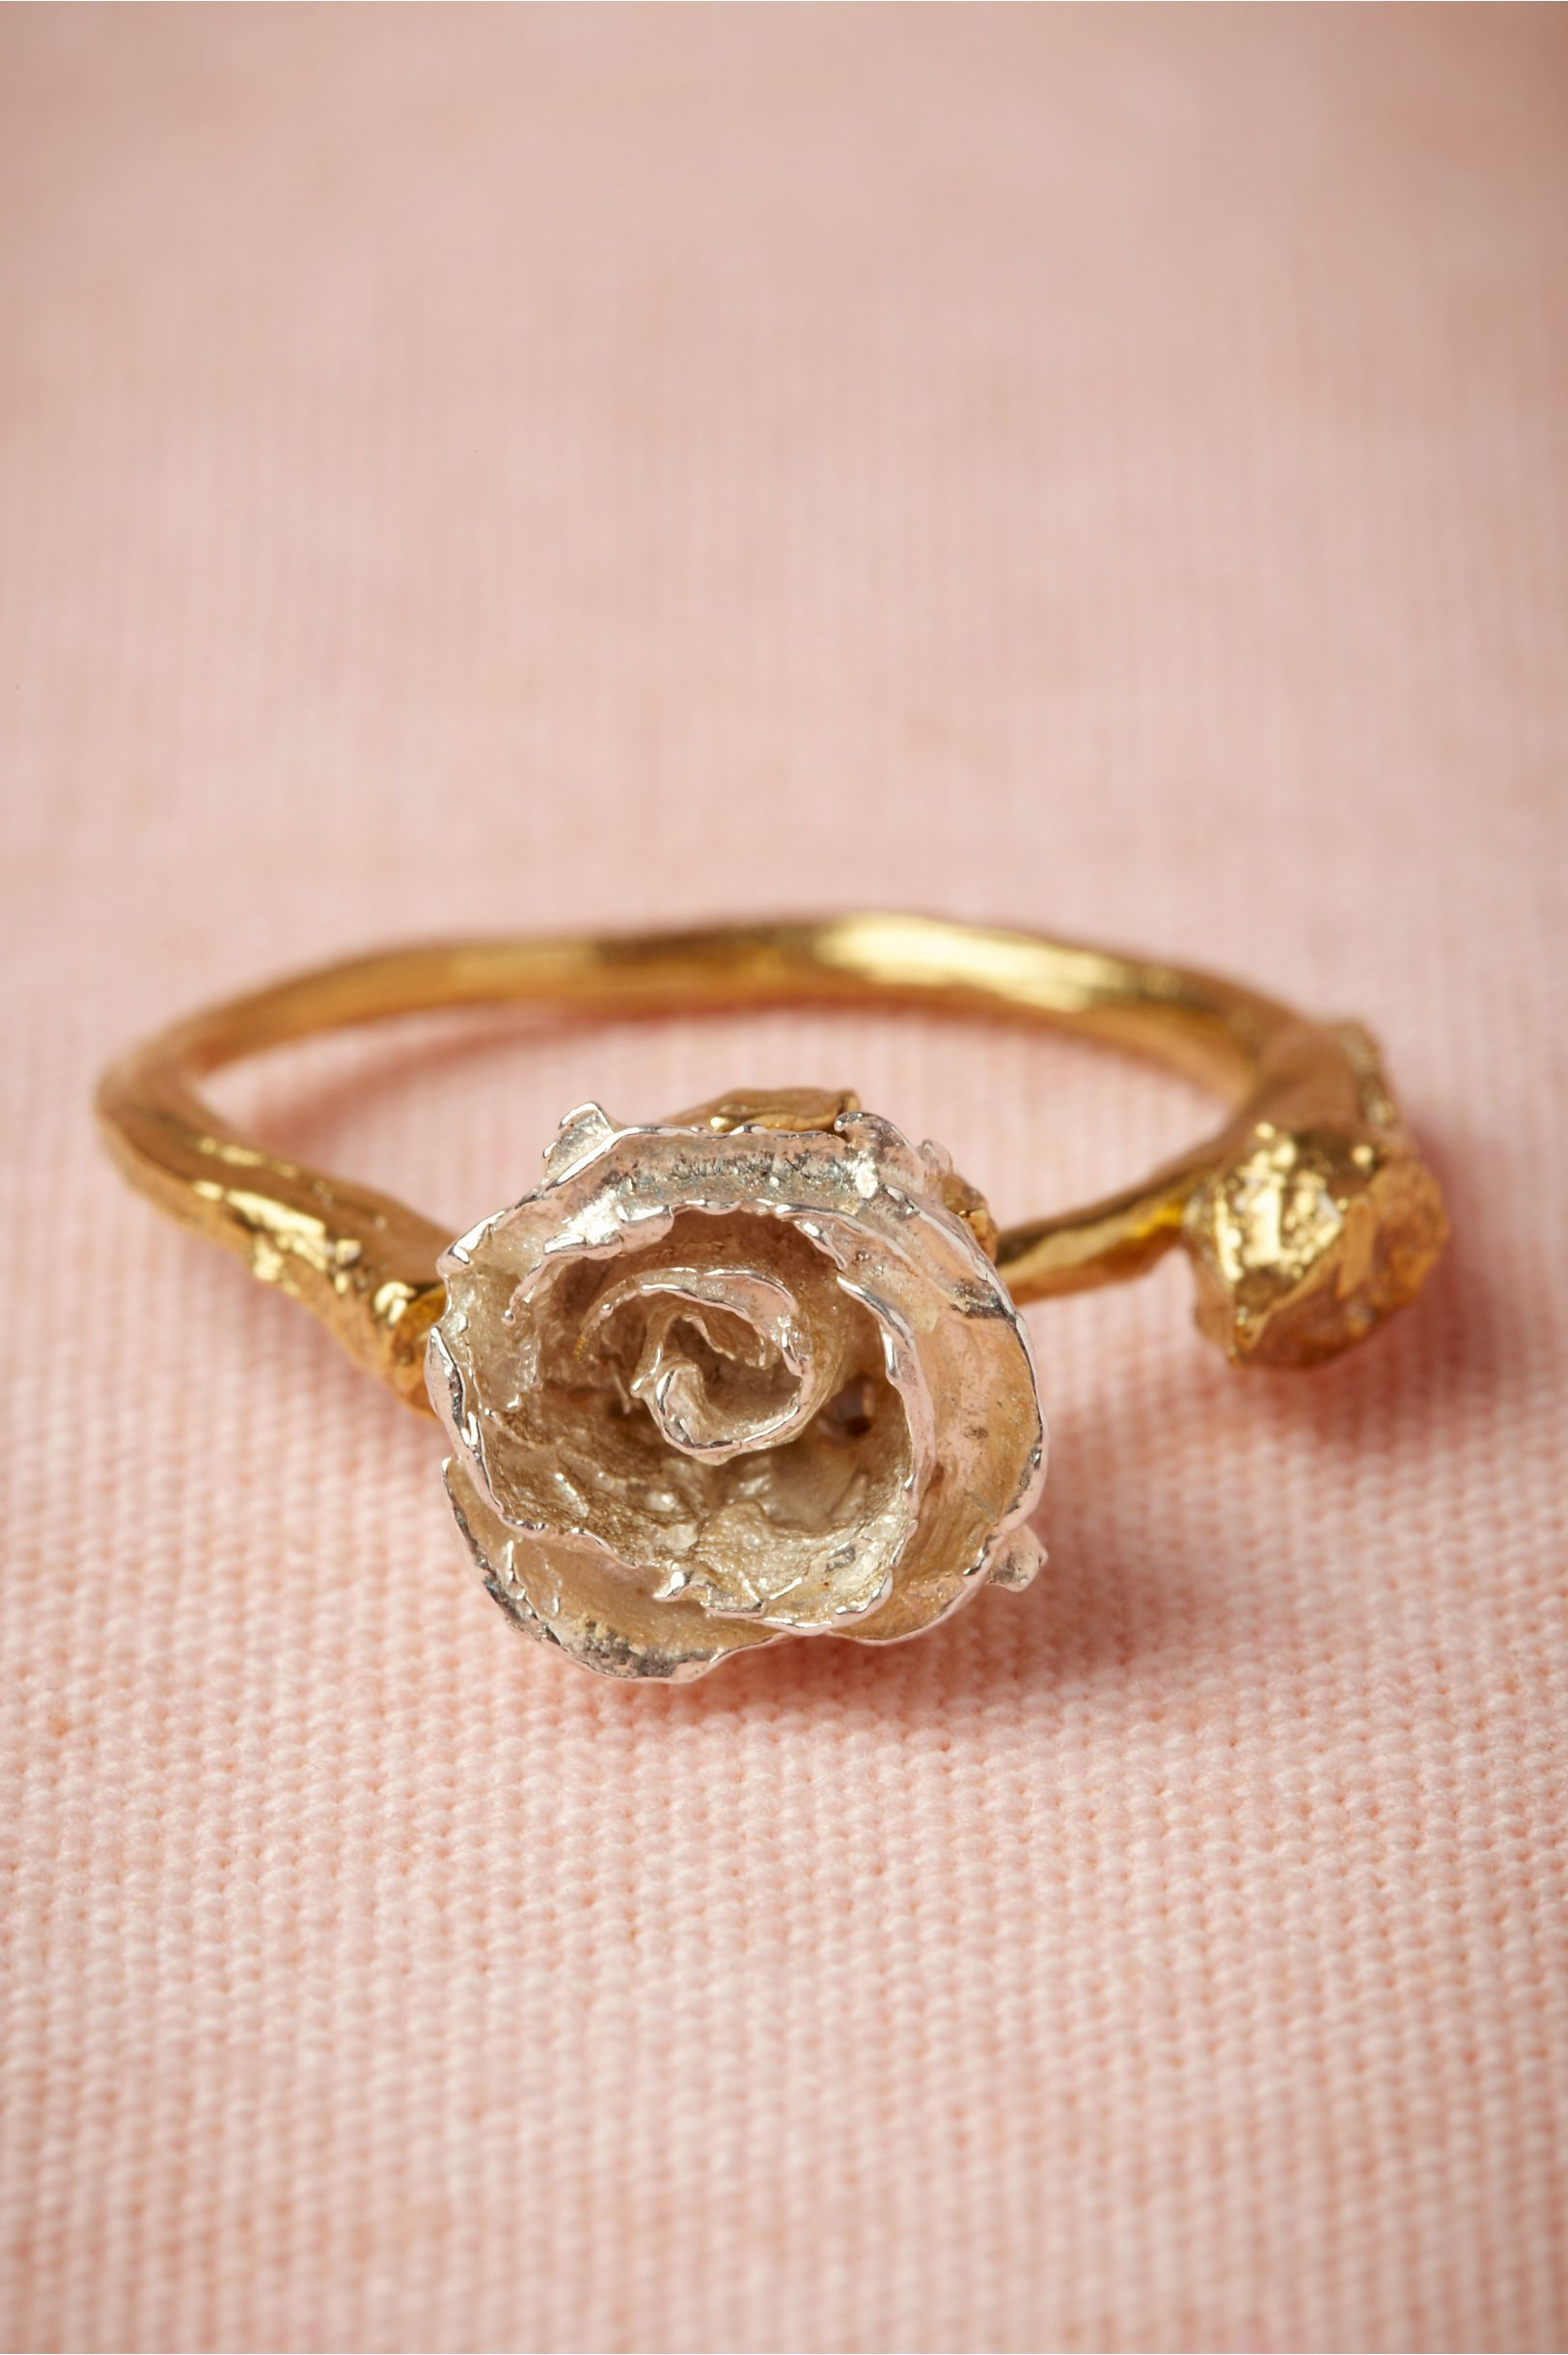 Silver Bud Ring in Shoes & Accessories Jewelry at BHLDN | Lovebirds ...